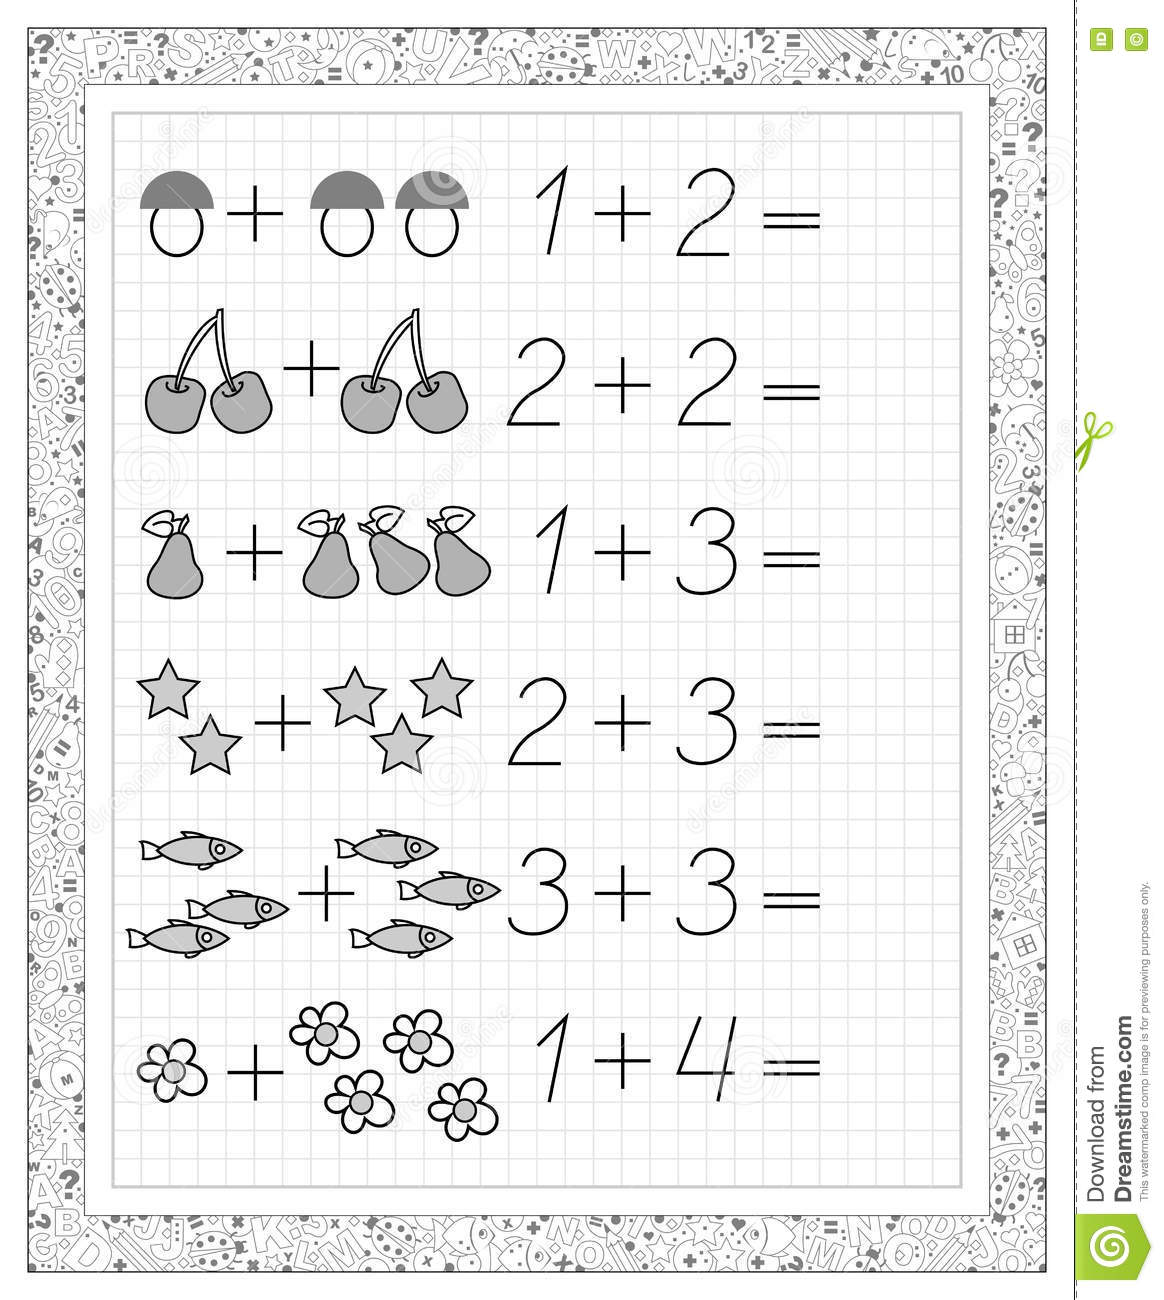 Black And White Worksheet On A Square Paper With Exercises For Little Children Page With The